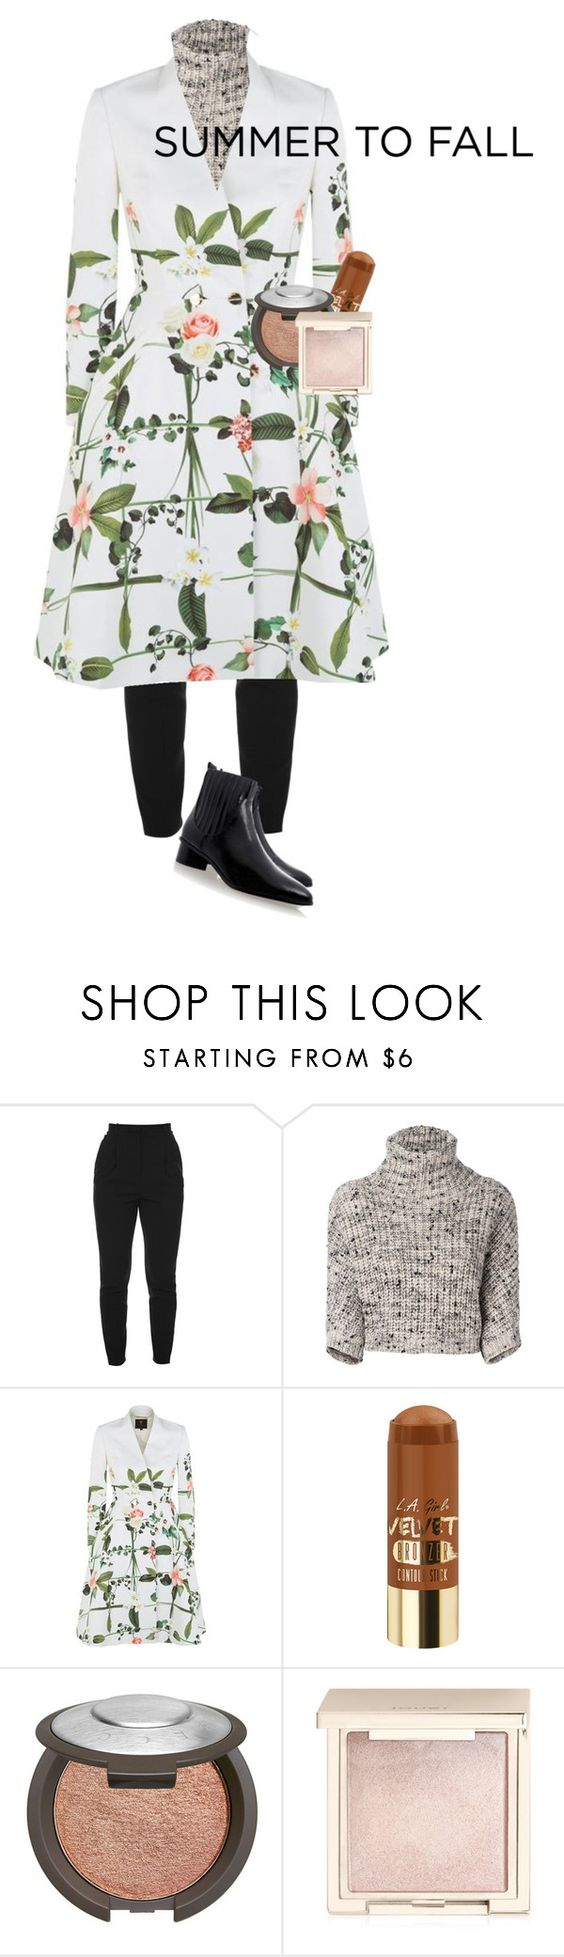 """""""Untitled #1972"""" by vanessabarbie10 ❤ liked on Polyvore featuring Alexander McQueen, Brunello Cucinelli, Ted Baker, Becca, Jouer and Senso"""